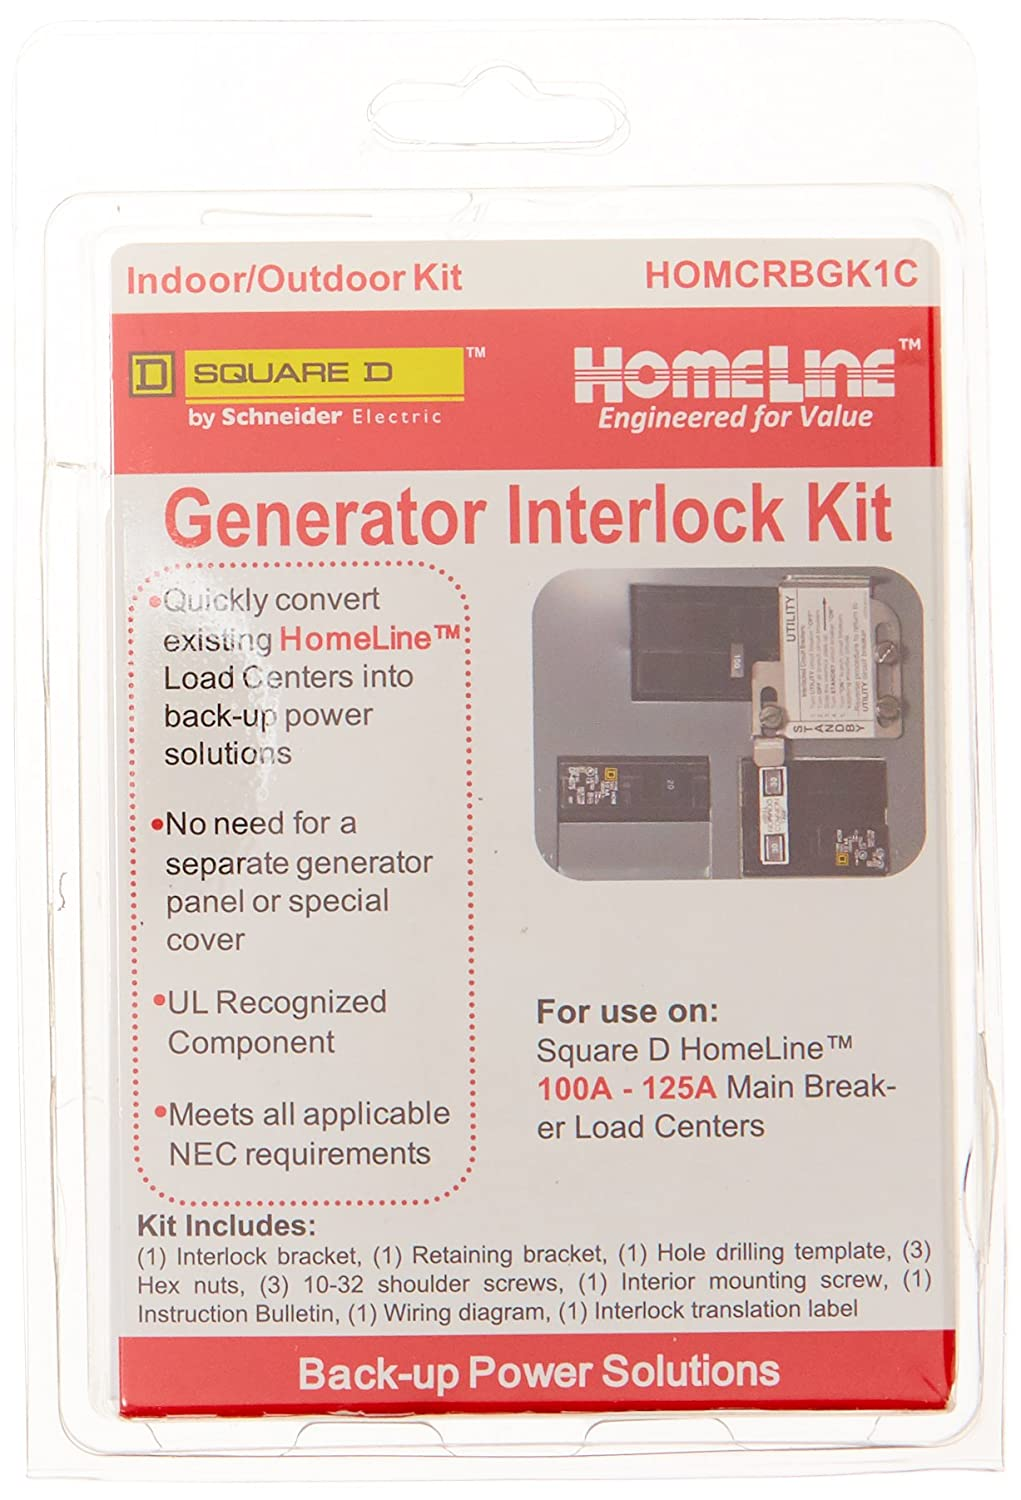 Square D By Schneider Electric Homcrbgk1c 100 Amp Electrical Interlock Wiring Diagram Homeline Load Center Outdoor Generator Inter Lock Kit Home Improvement